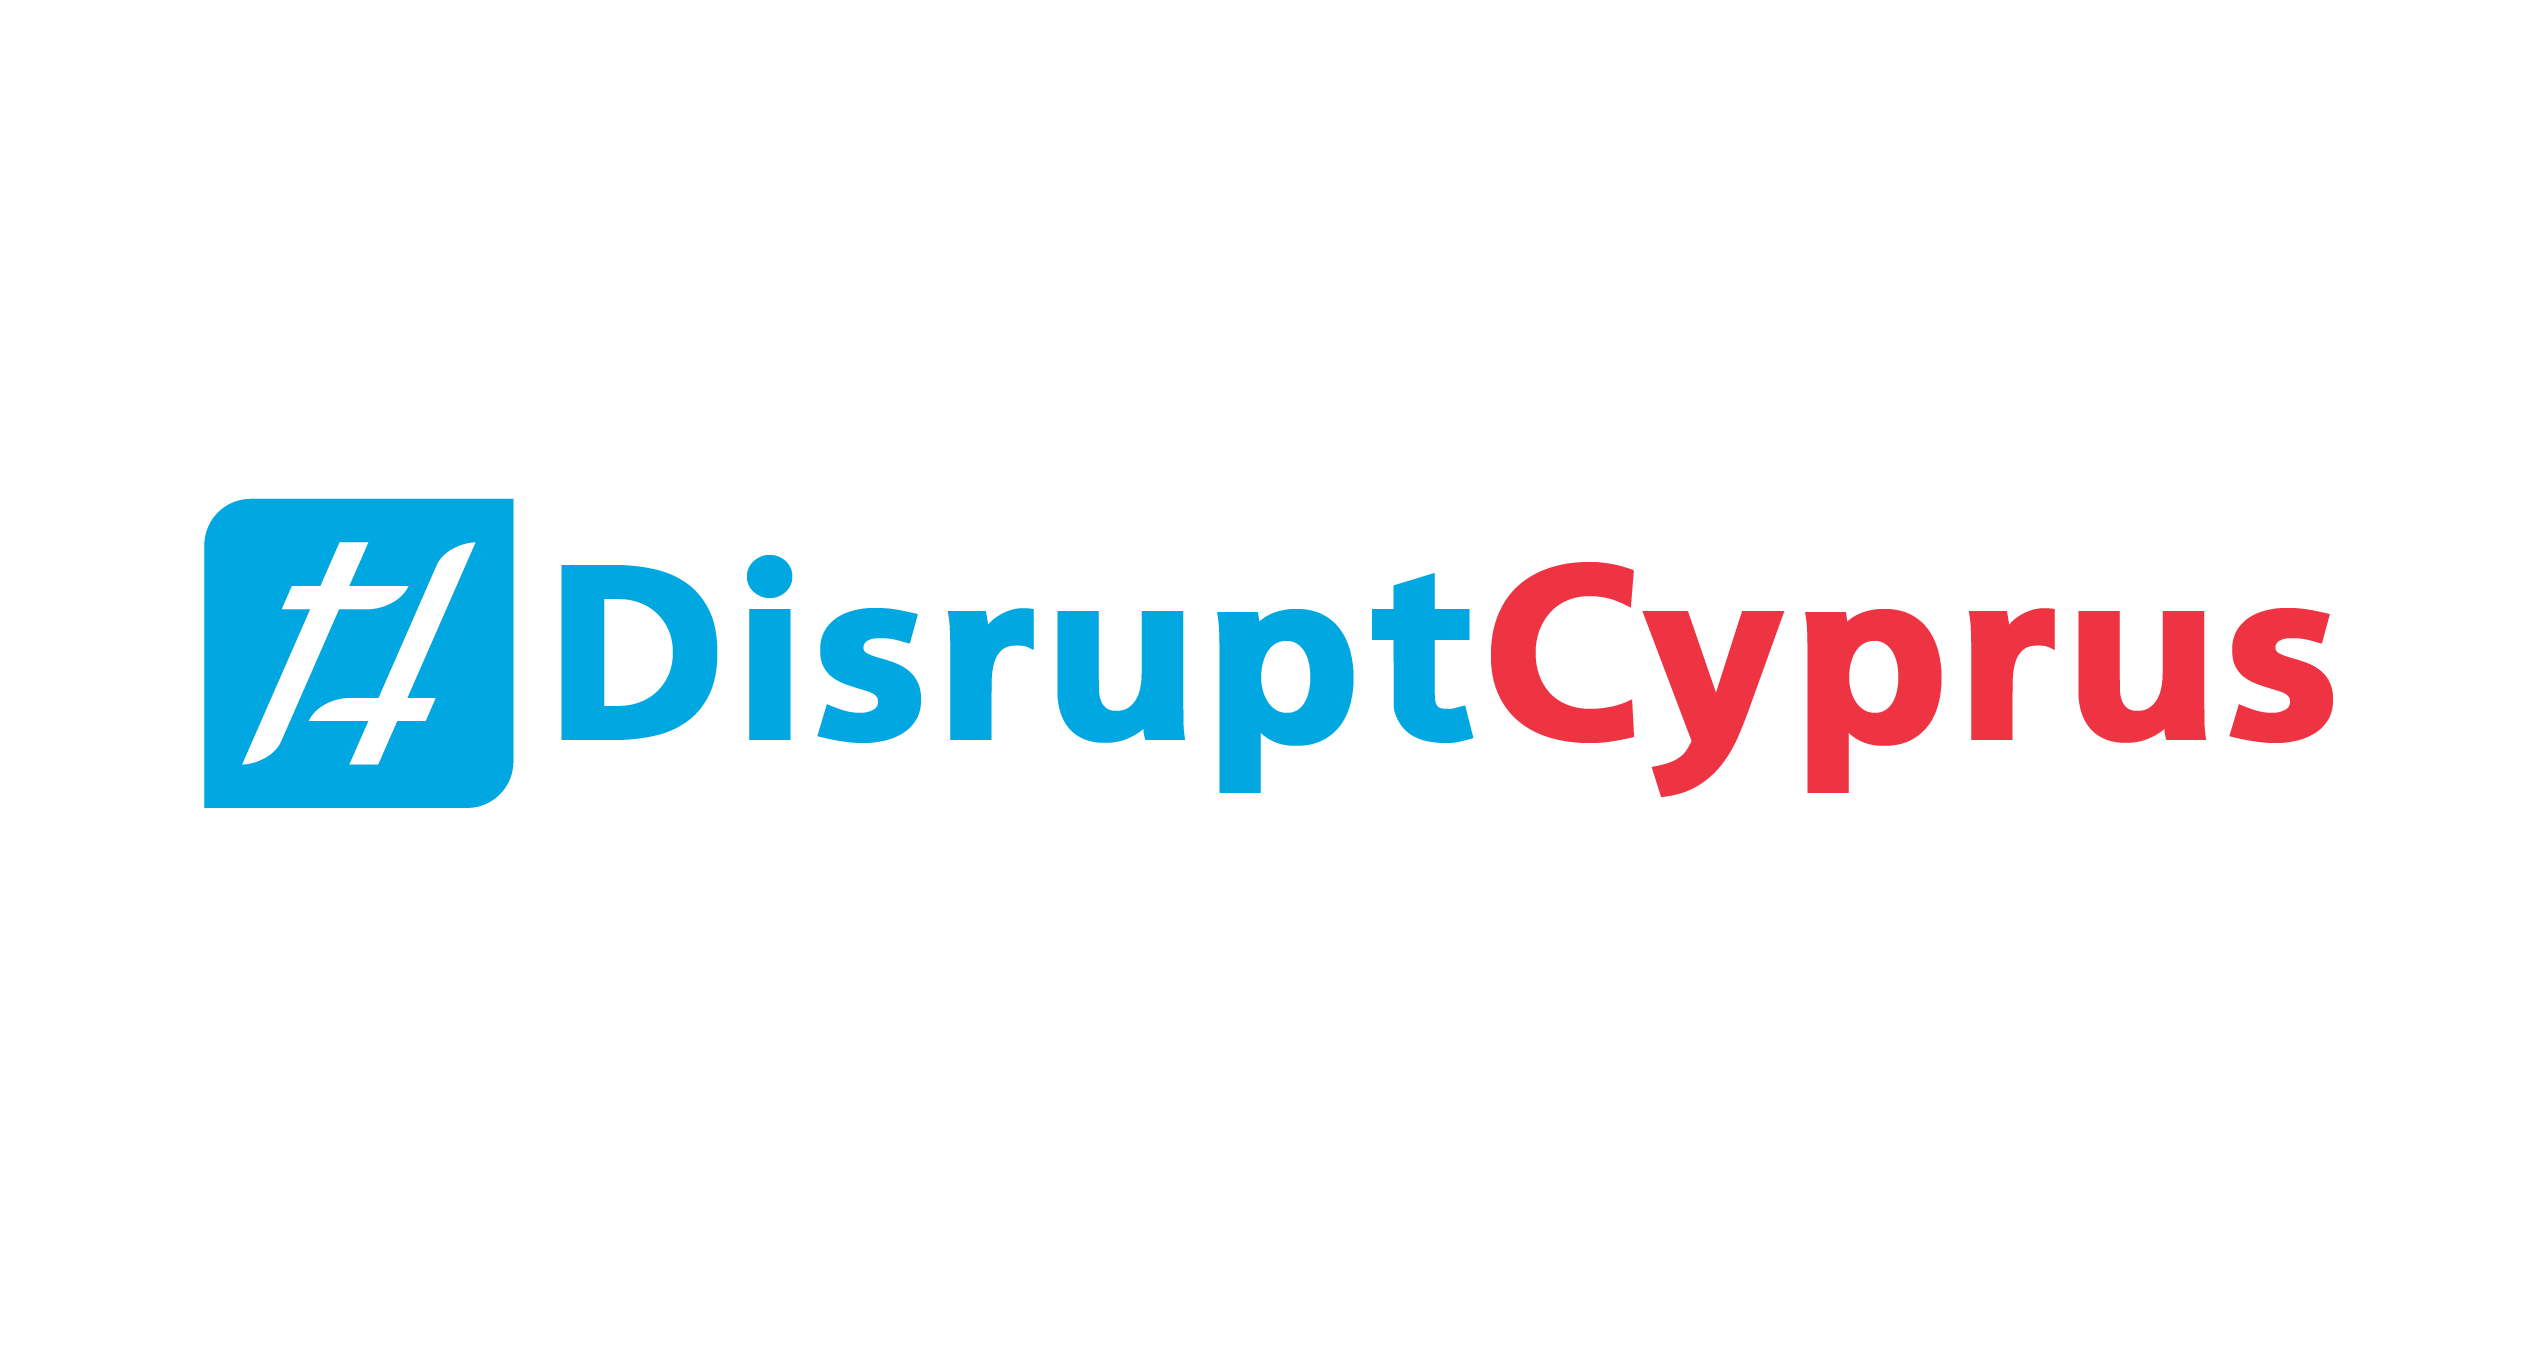 Disruptcyprus - media supporters